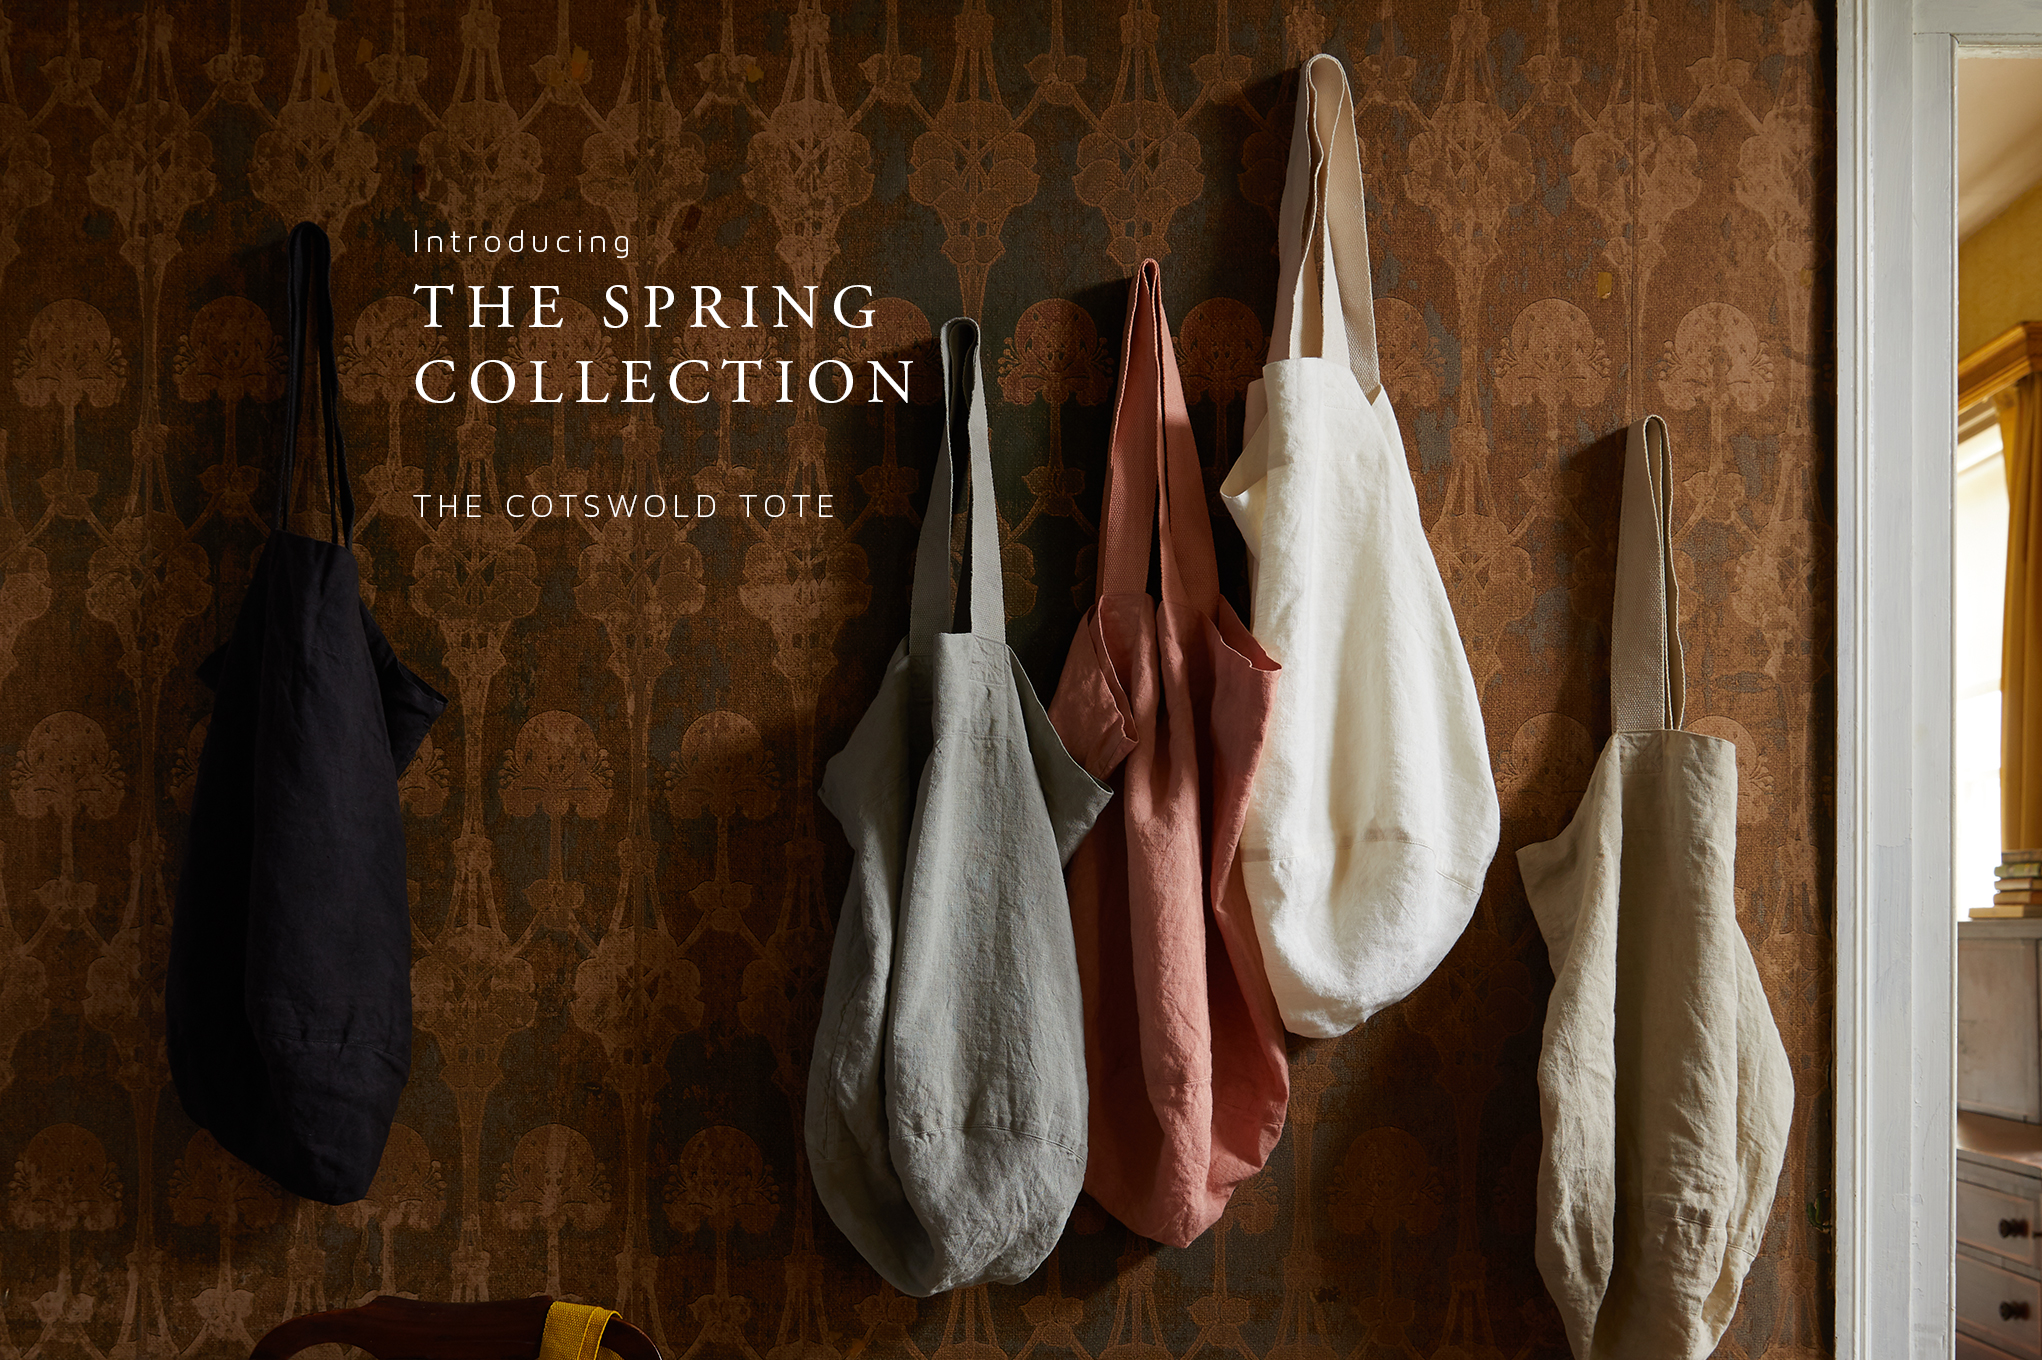 Introducing the Spring Collection: The Cotswold Tote